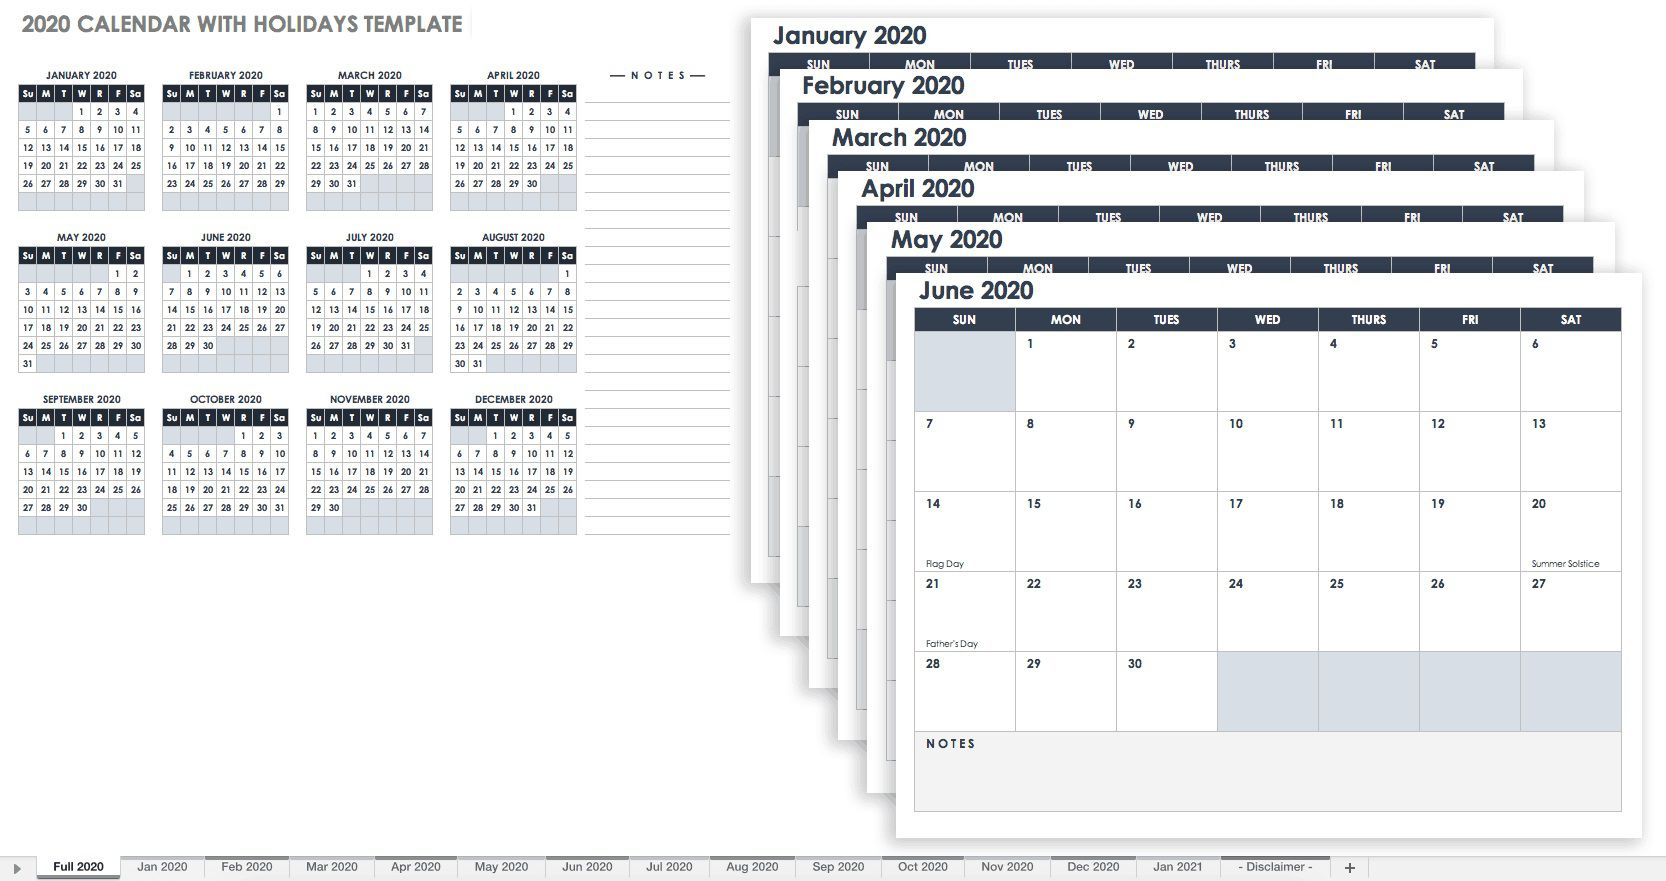 001 Incredible Google Sheet Calendar Template 2020 High Definition  Monthly And 2021 2020-21Full